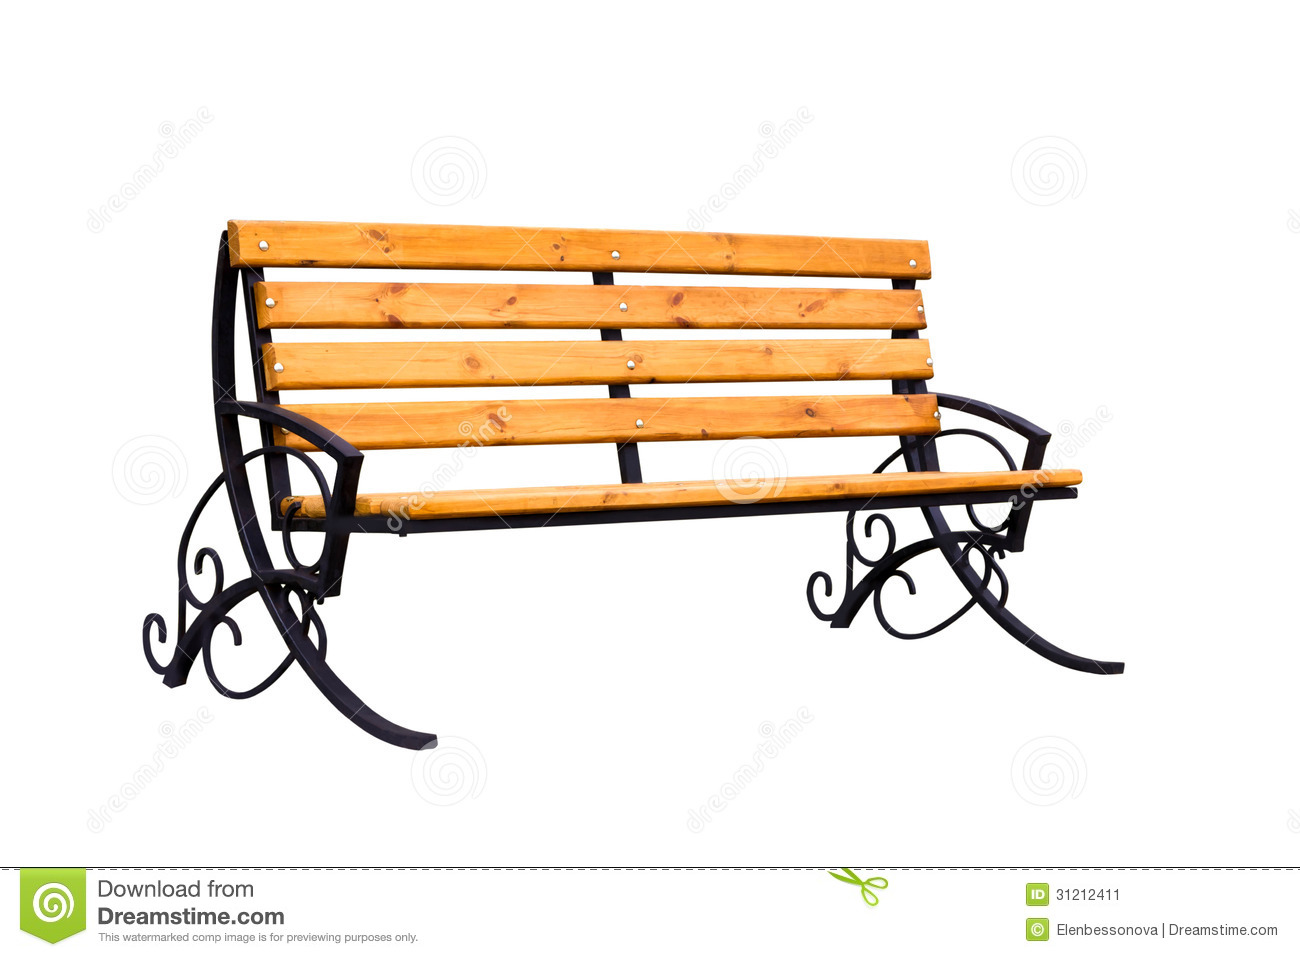 Decorative wooden bench isolated over a white background.